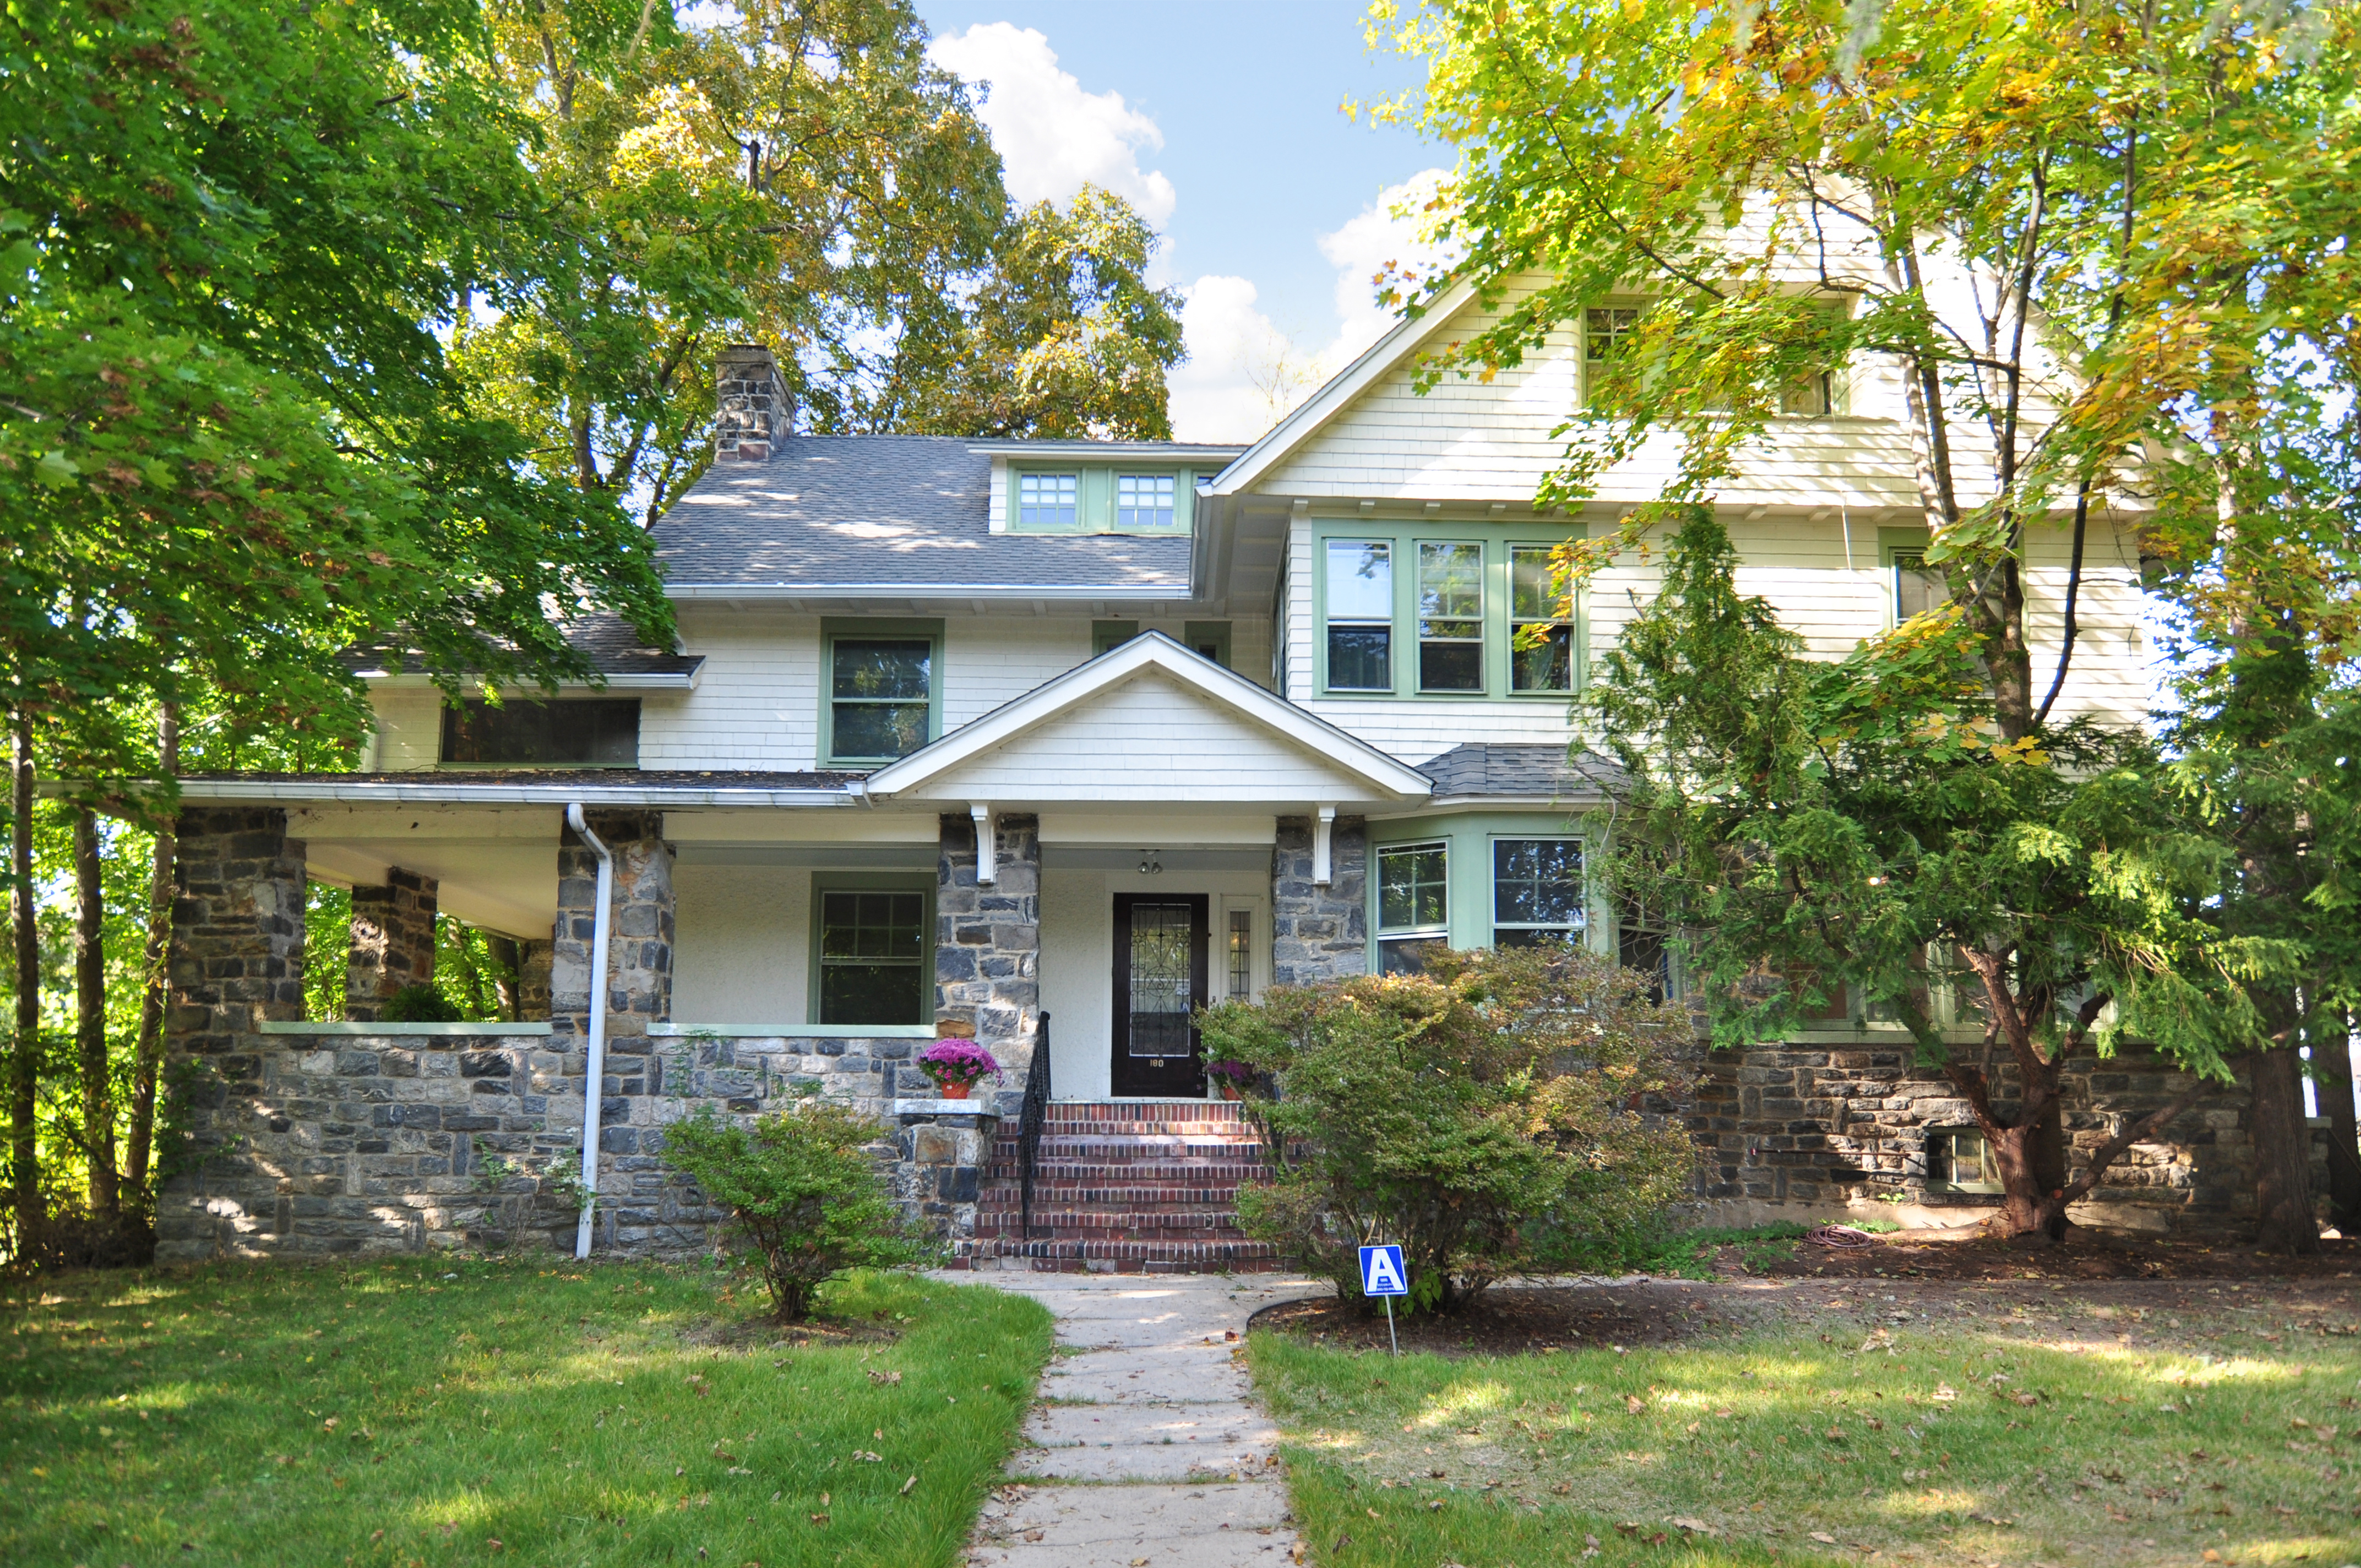 Single Family Home for Sale at Colonial Home in Prestigious Paine Heights 180 Broadview Avenue New Rochelle, New York 10804 United States